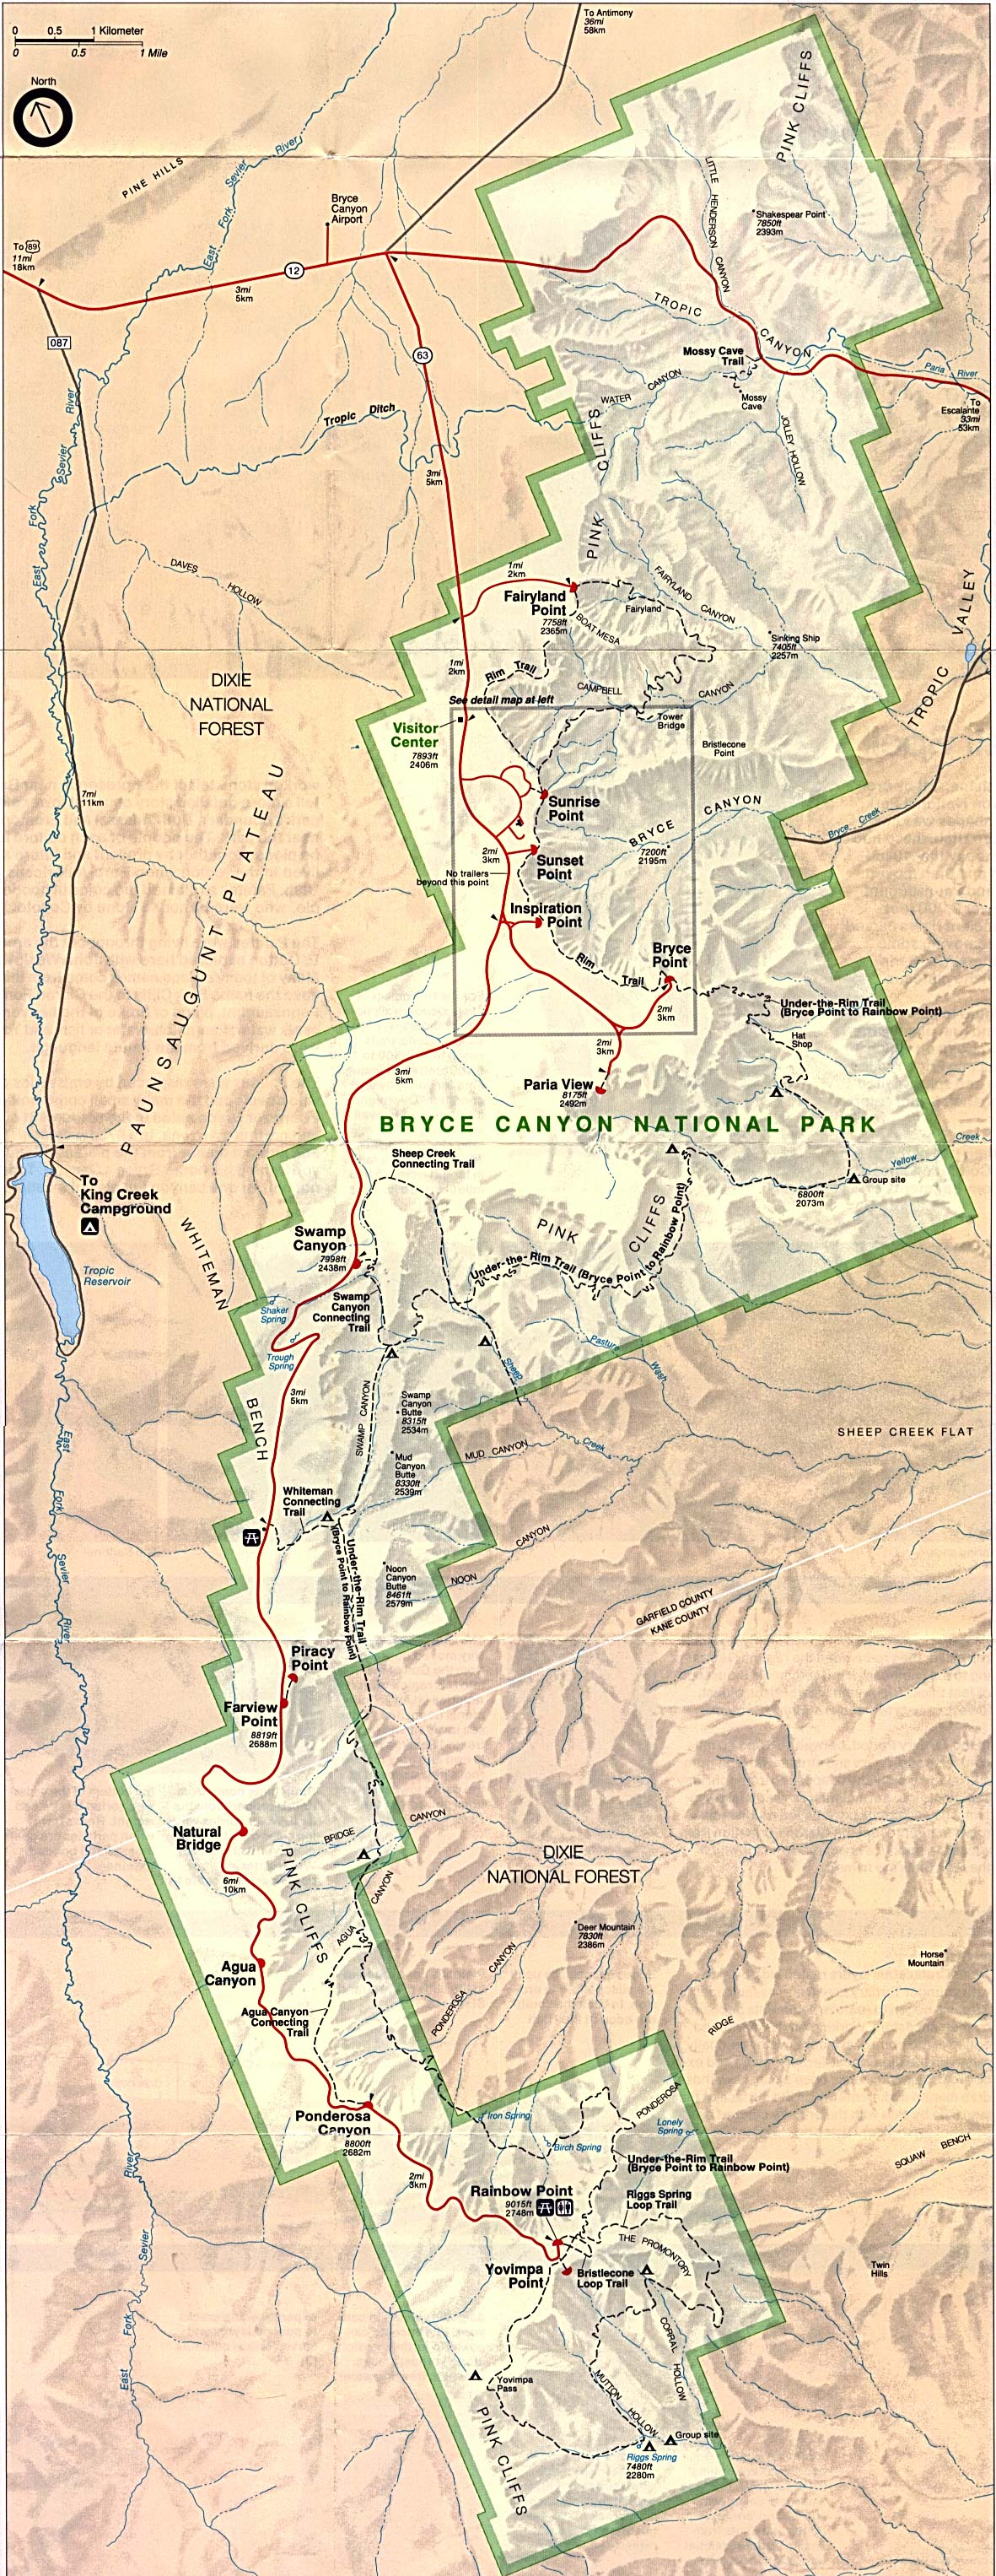 Map of Bryce Canyon National Park : Worldofmaps.net - online ...